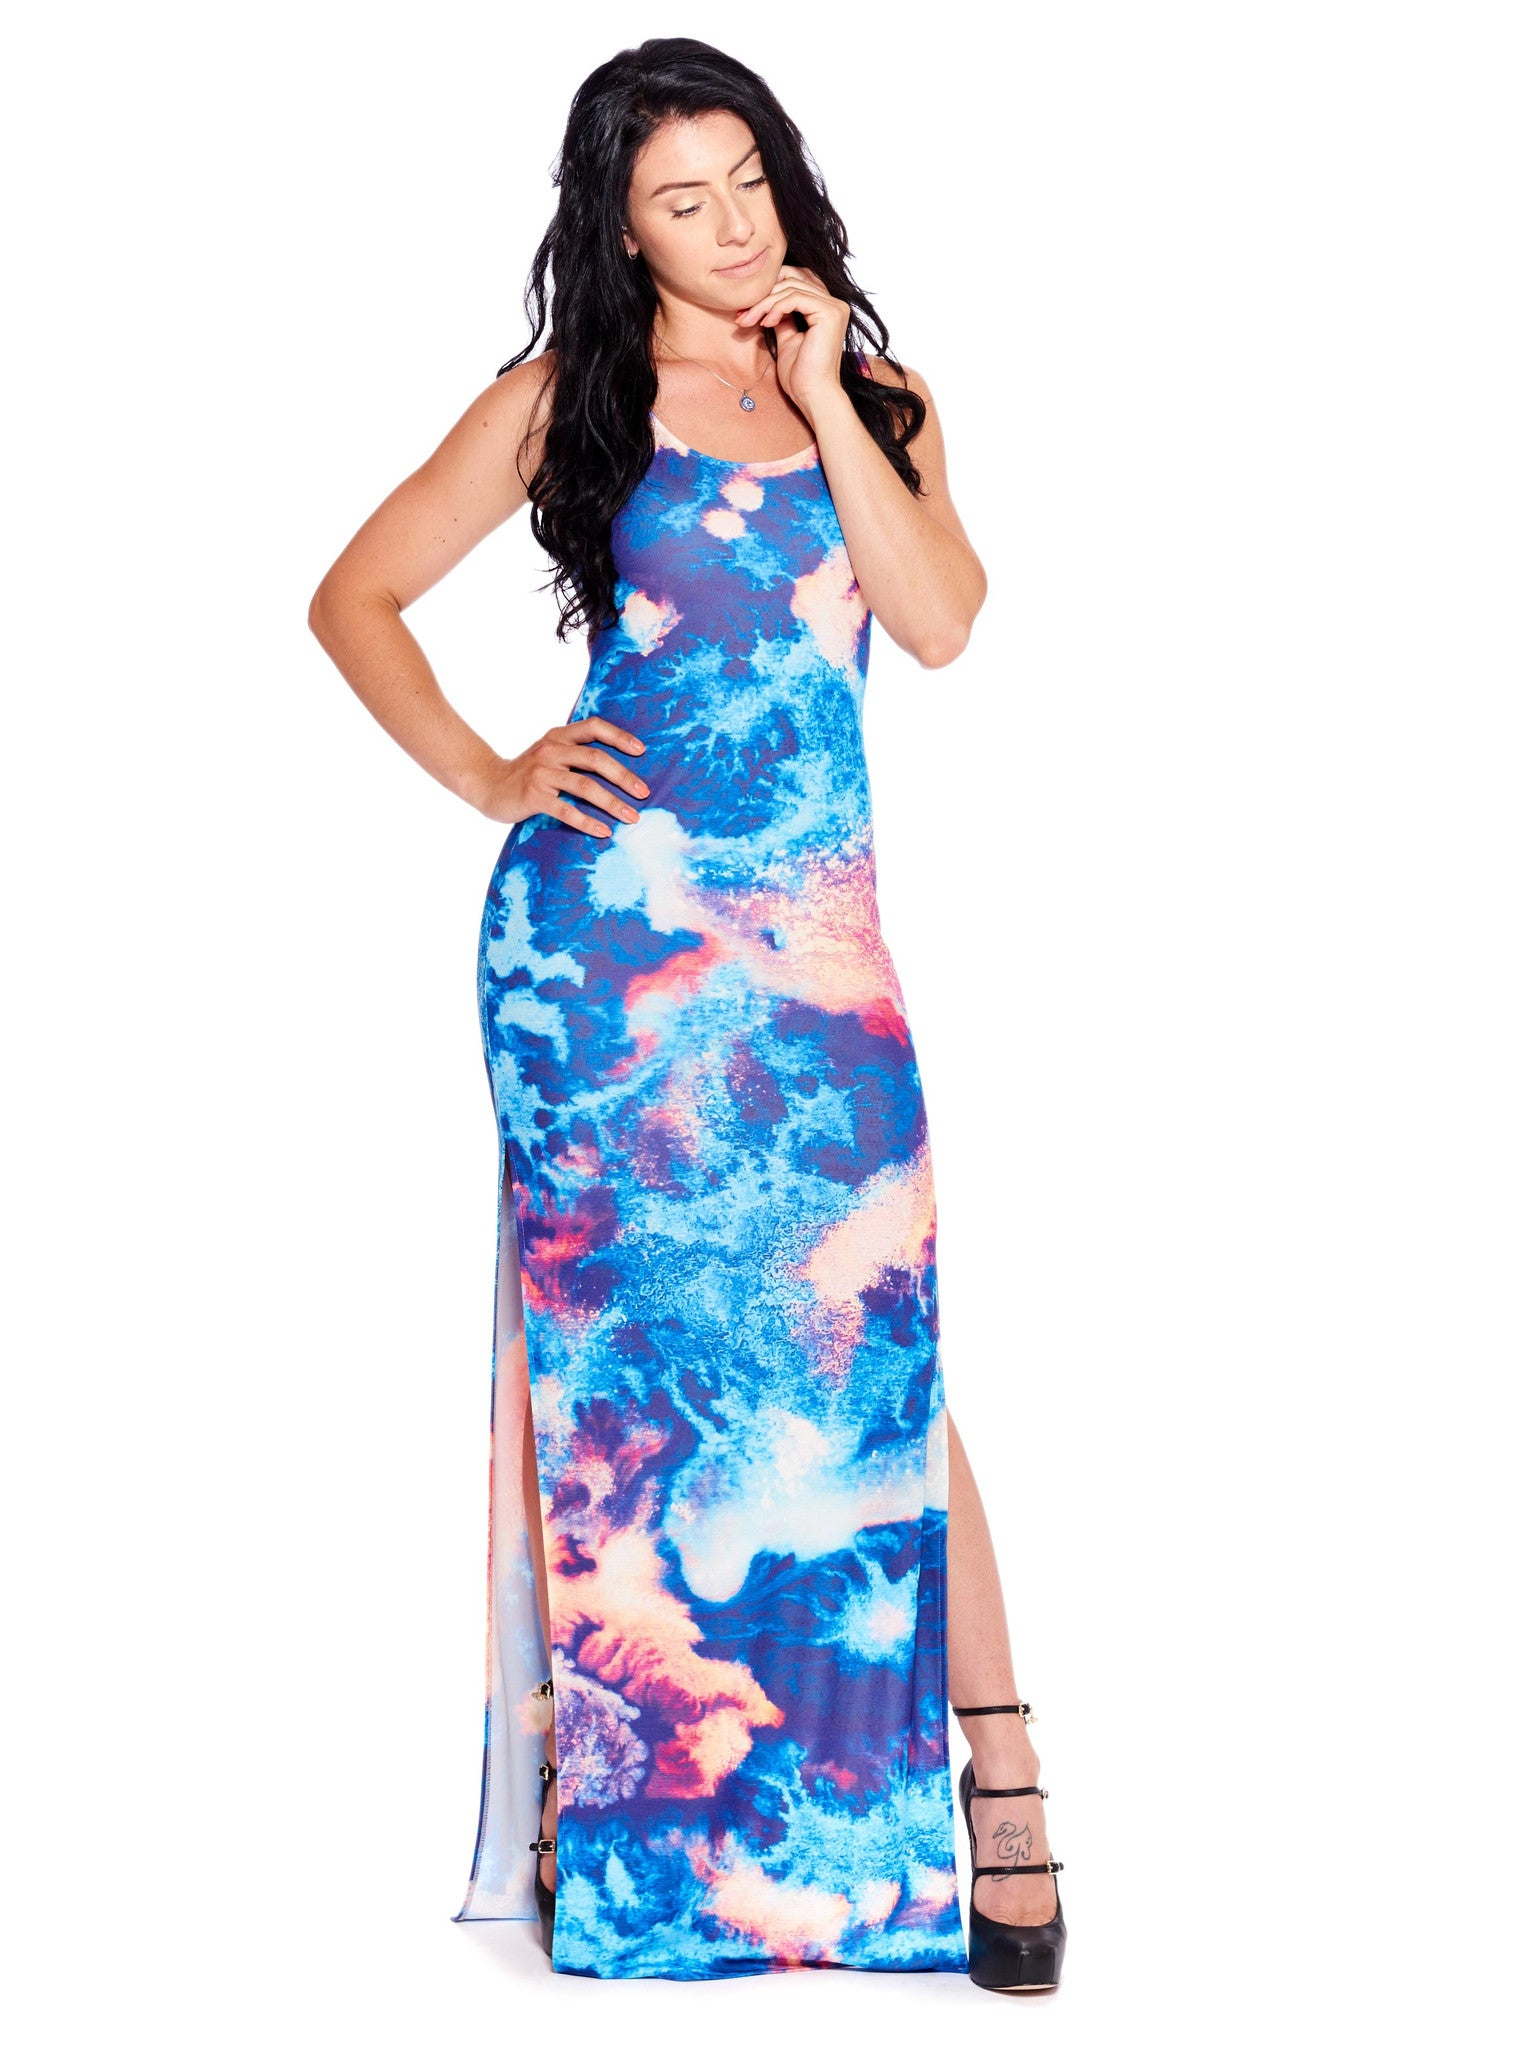 Magical Maxi Dress - Nuvango Gallery & Goods - 4